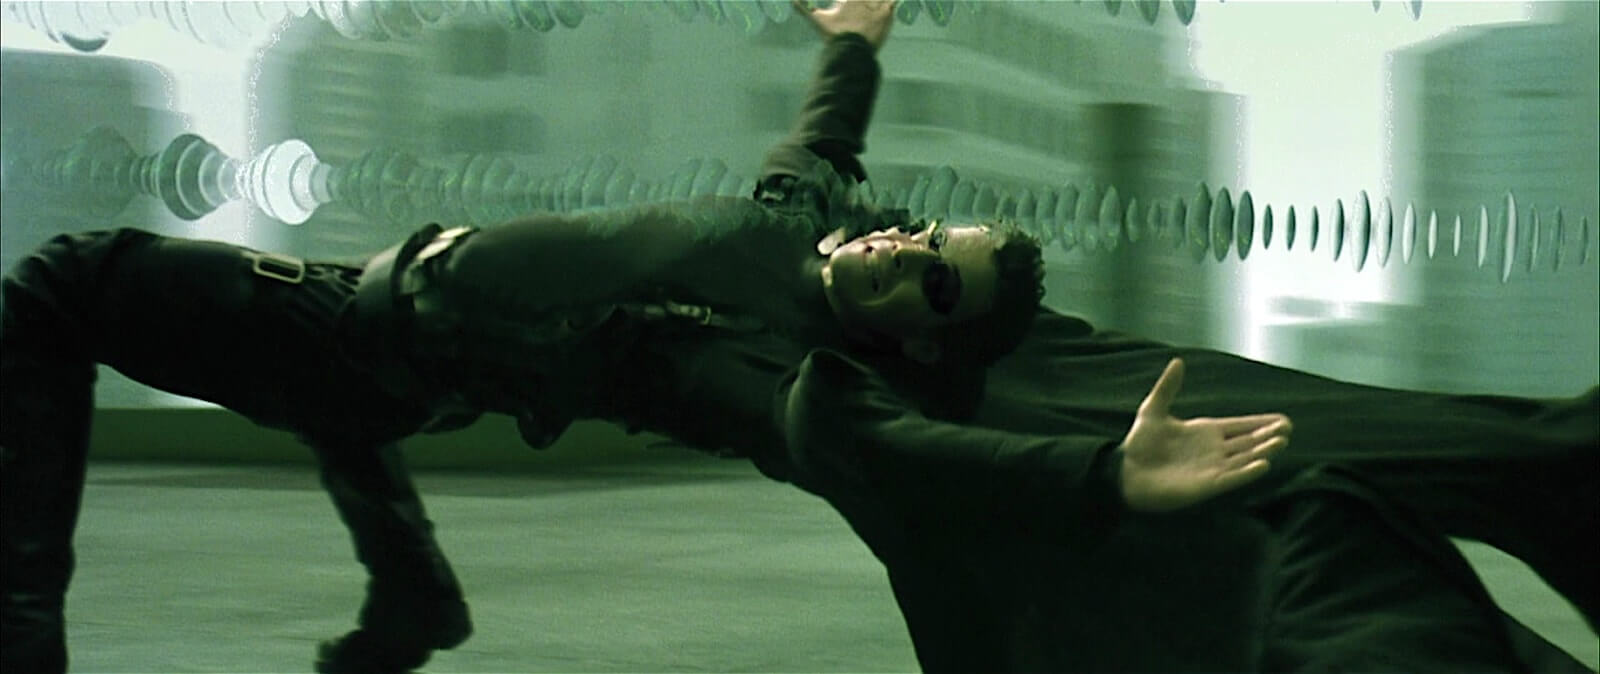 3 Ways To Make Your Film Blocking More Interesting - The Matrix